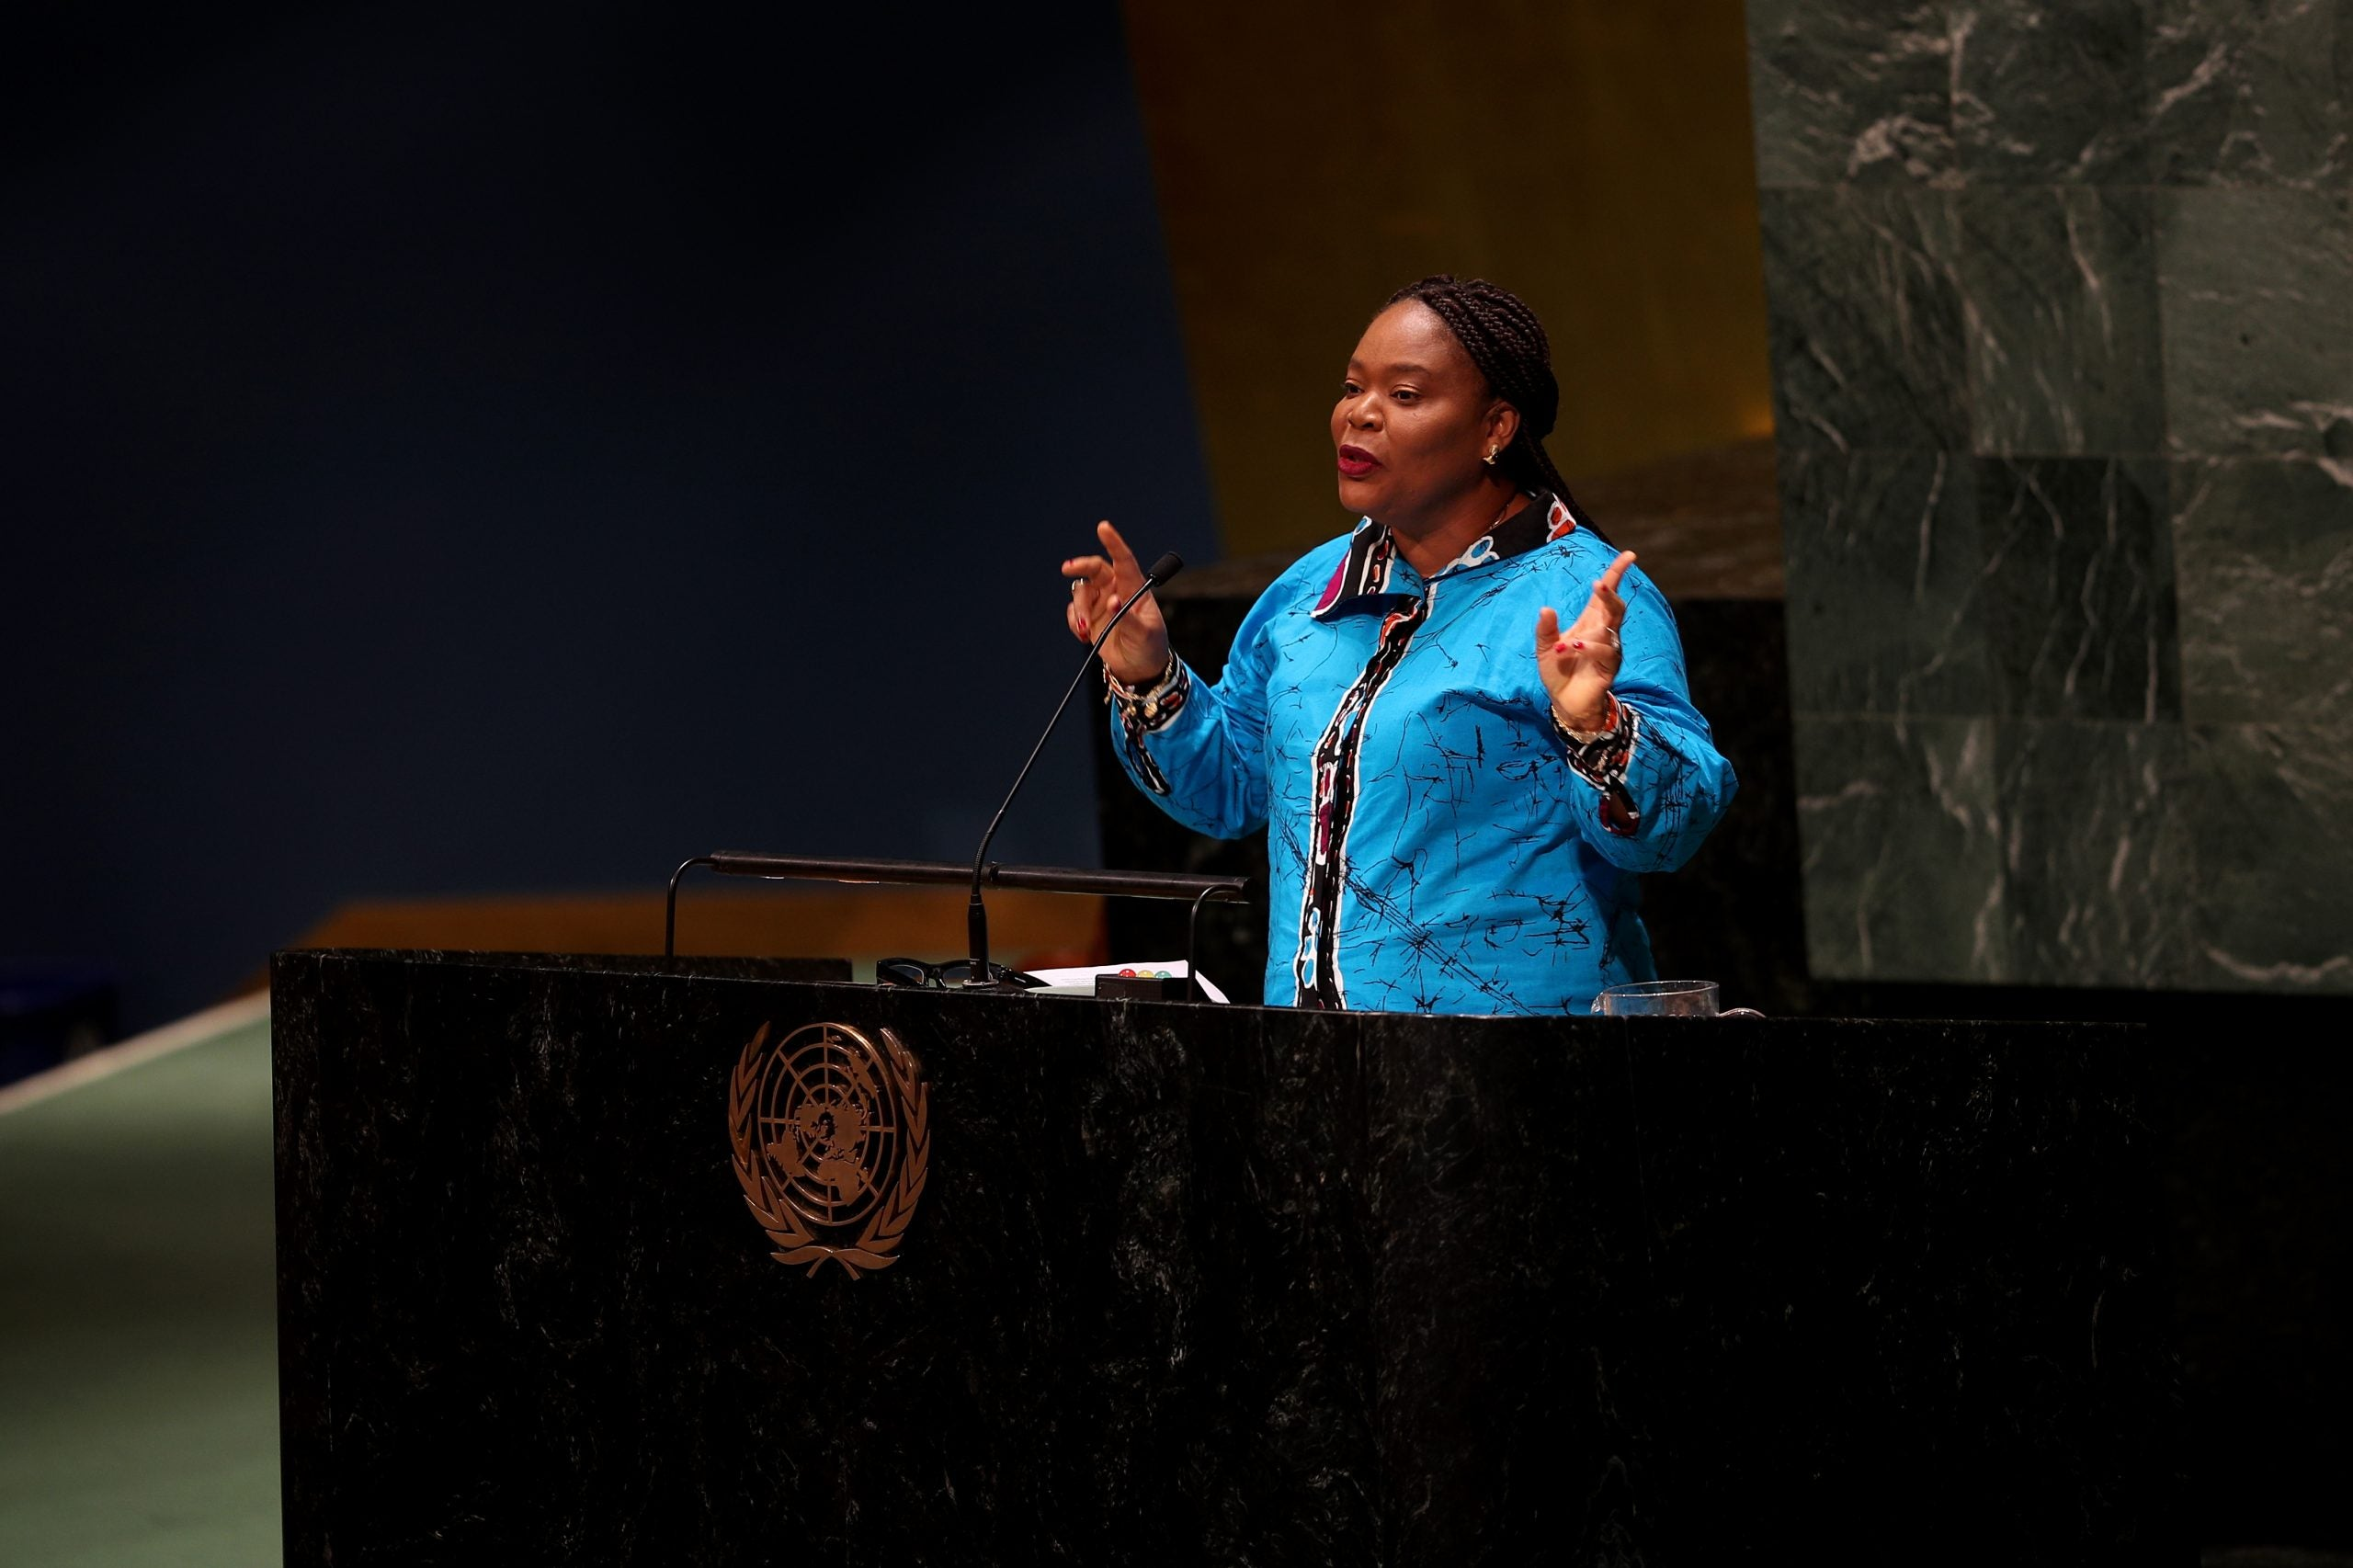 NEW YORK, USA - MARCH 06: Liberian peace activist and 2011 Nobel Peace Prize winner Leymah Gbowee speaks at the United Nations Observance of International Women's Day 2020 on March 6, 2020 at United Nations General Assembly in New York City, United States. (Photo by Tayfun Coskun/Anadolu Agency via Getty Images)